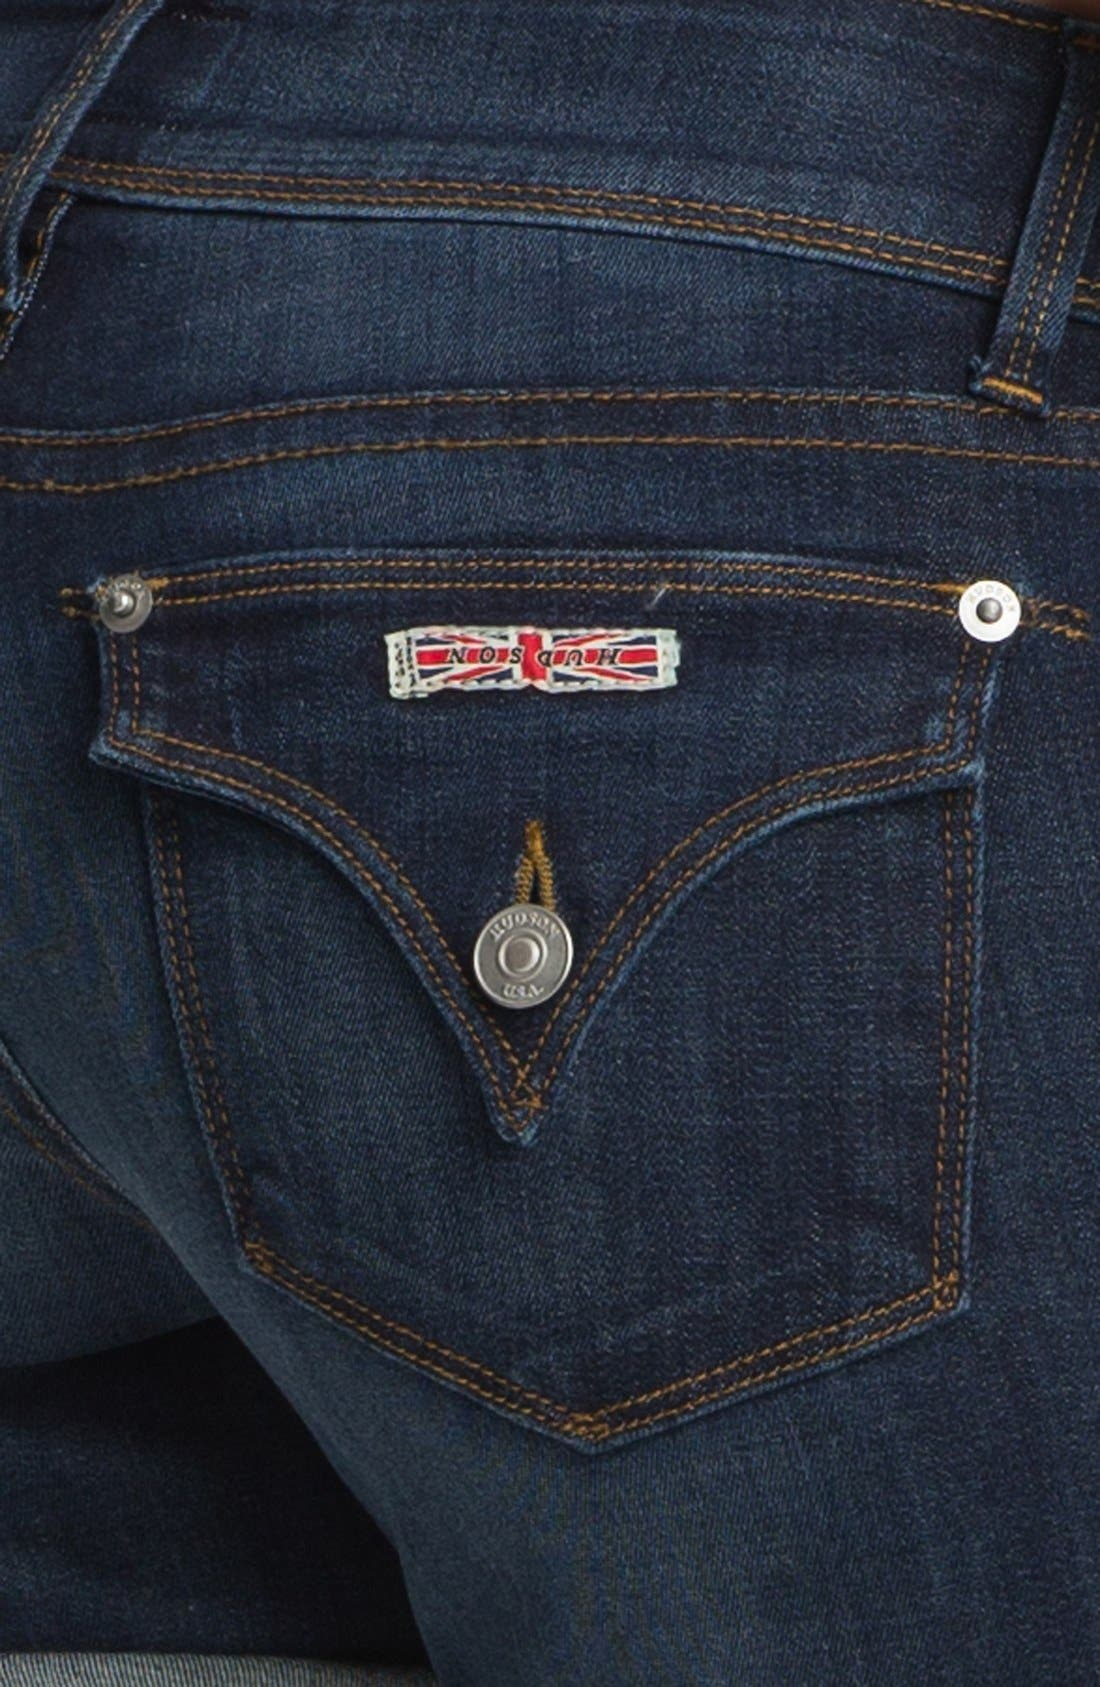 'Croxley' Cuff Denim Shorts,                             Alternate thumbnail 3, color,                             404